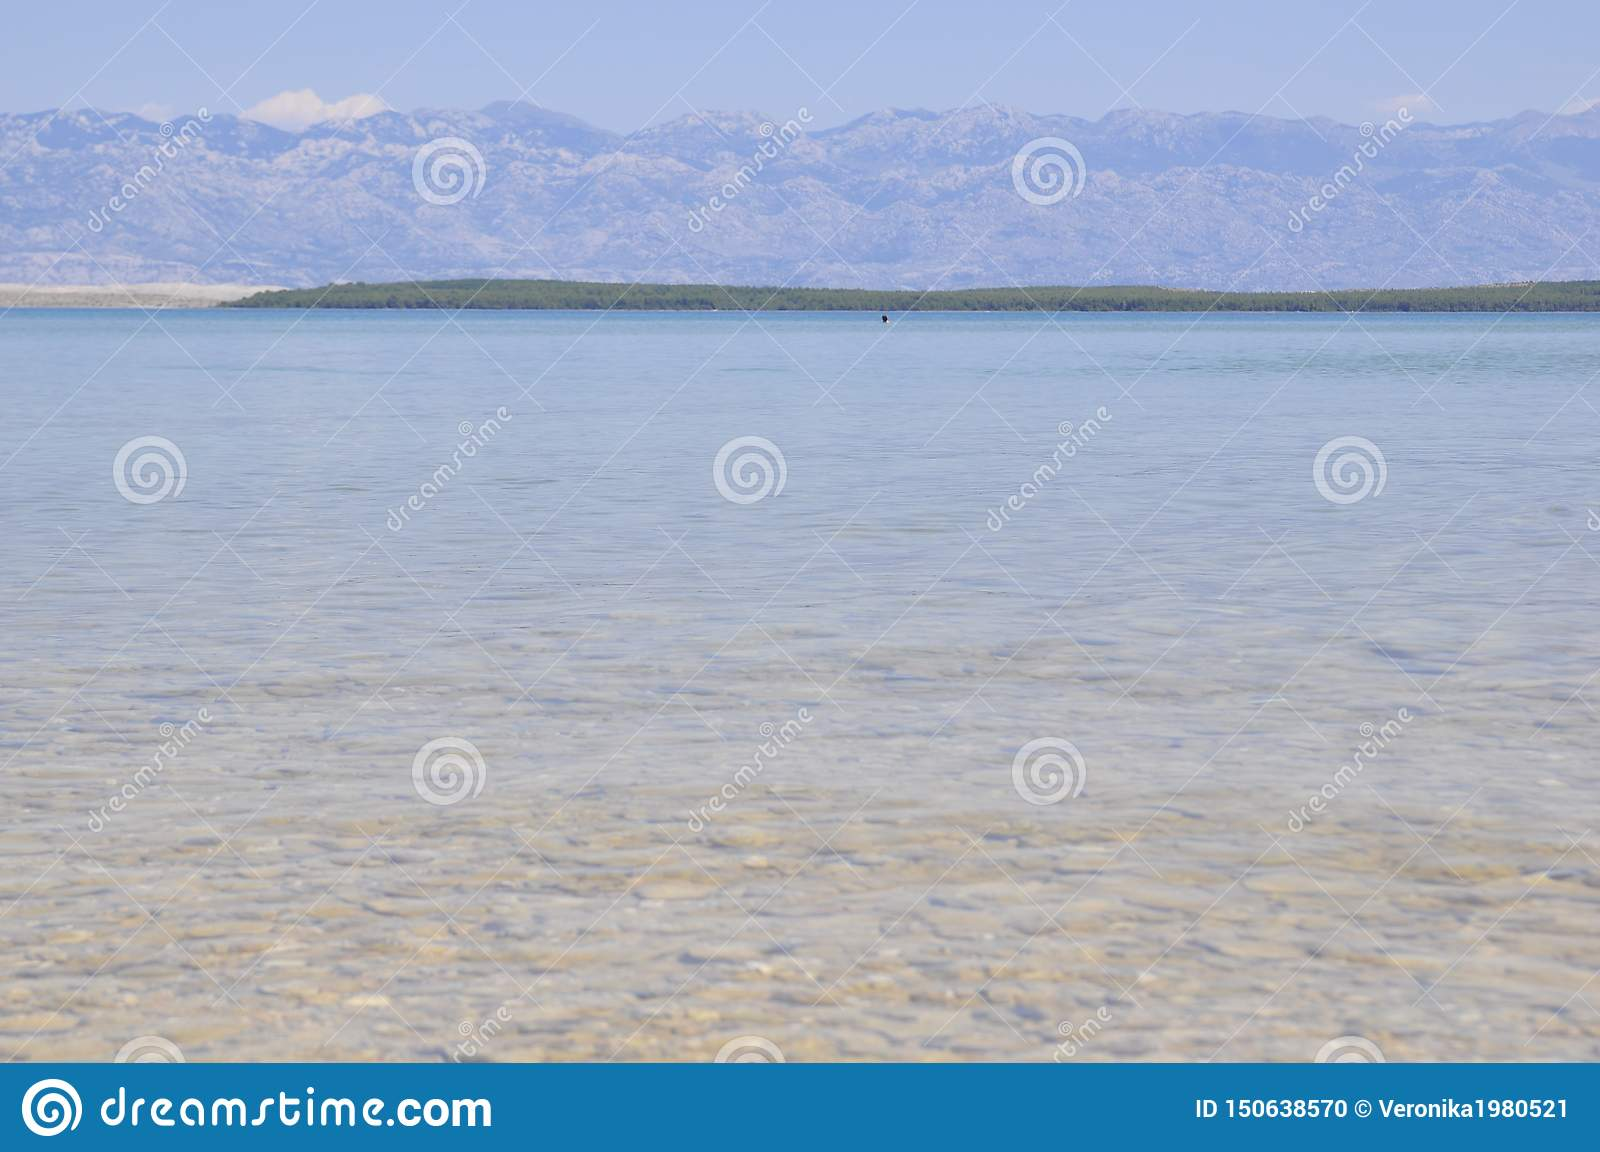 Beach. Sea. The mountains. Clear water. Stones under water.